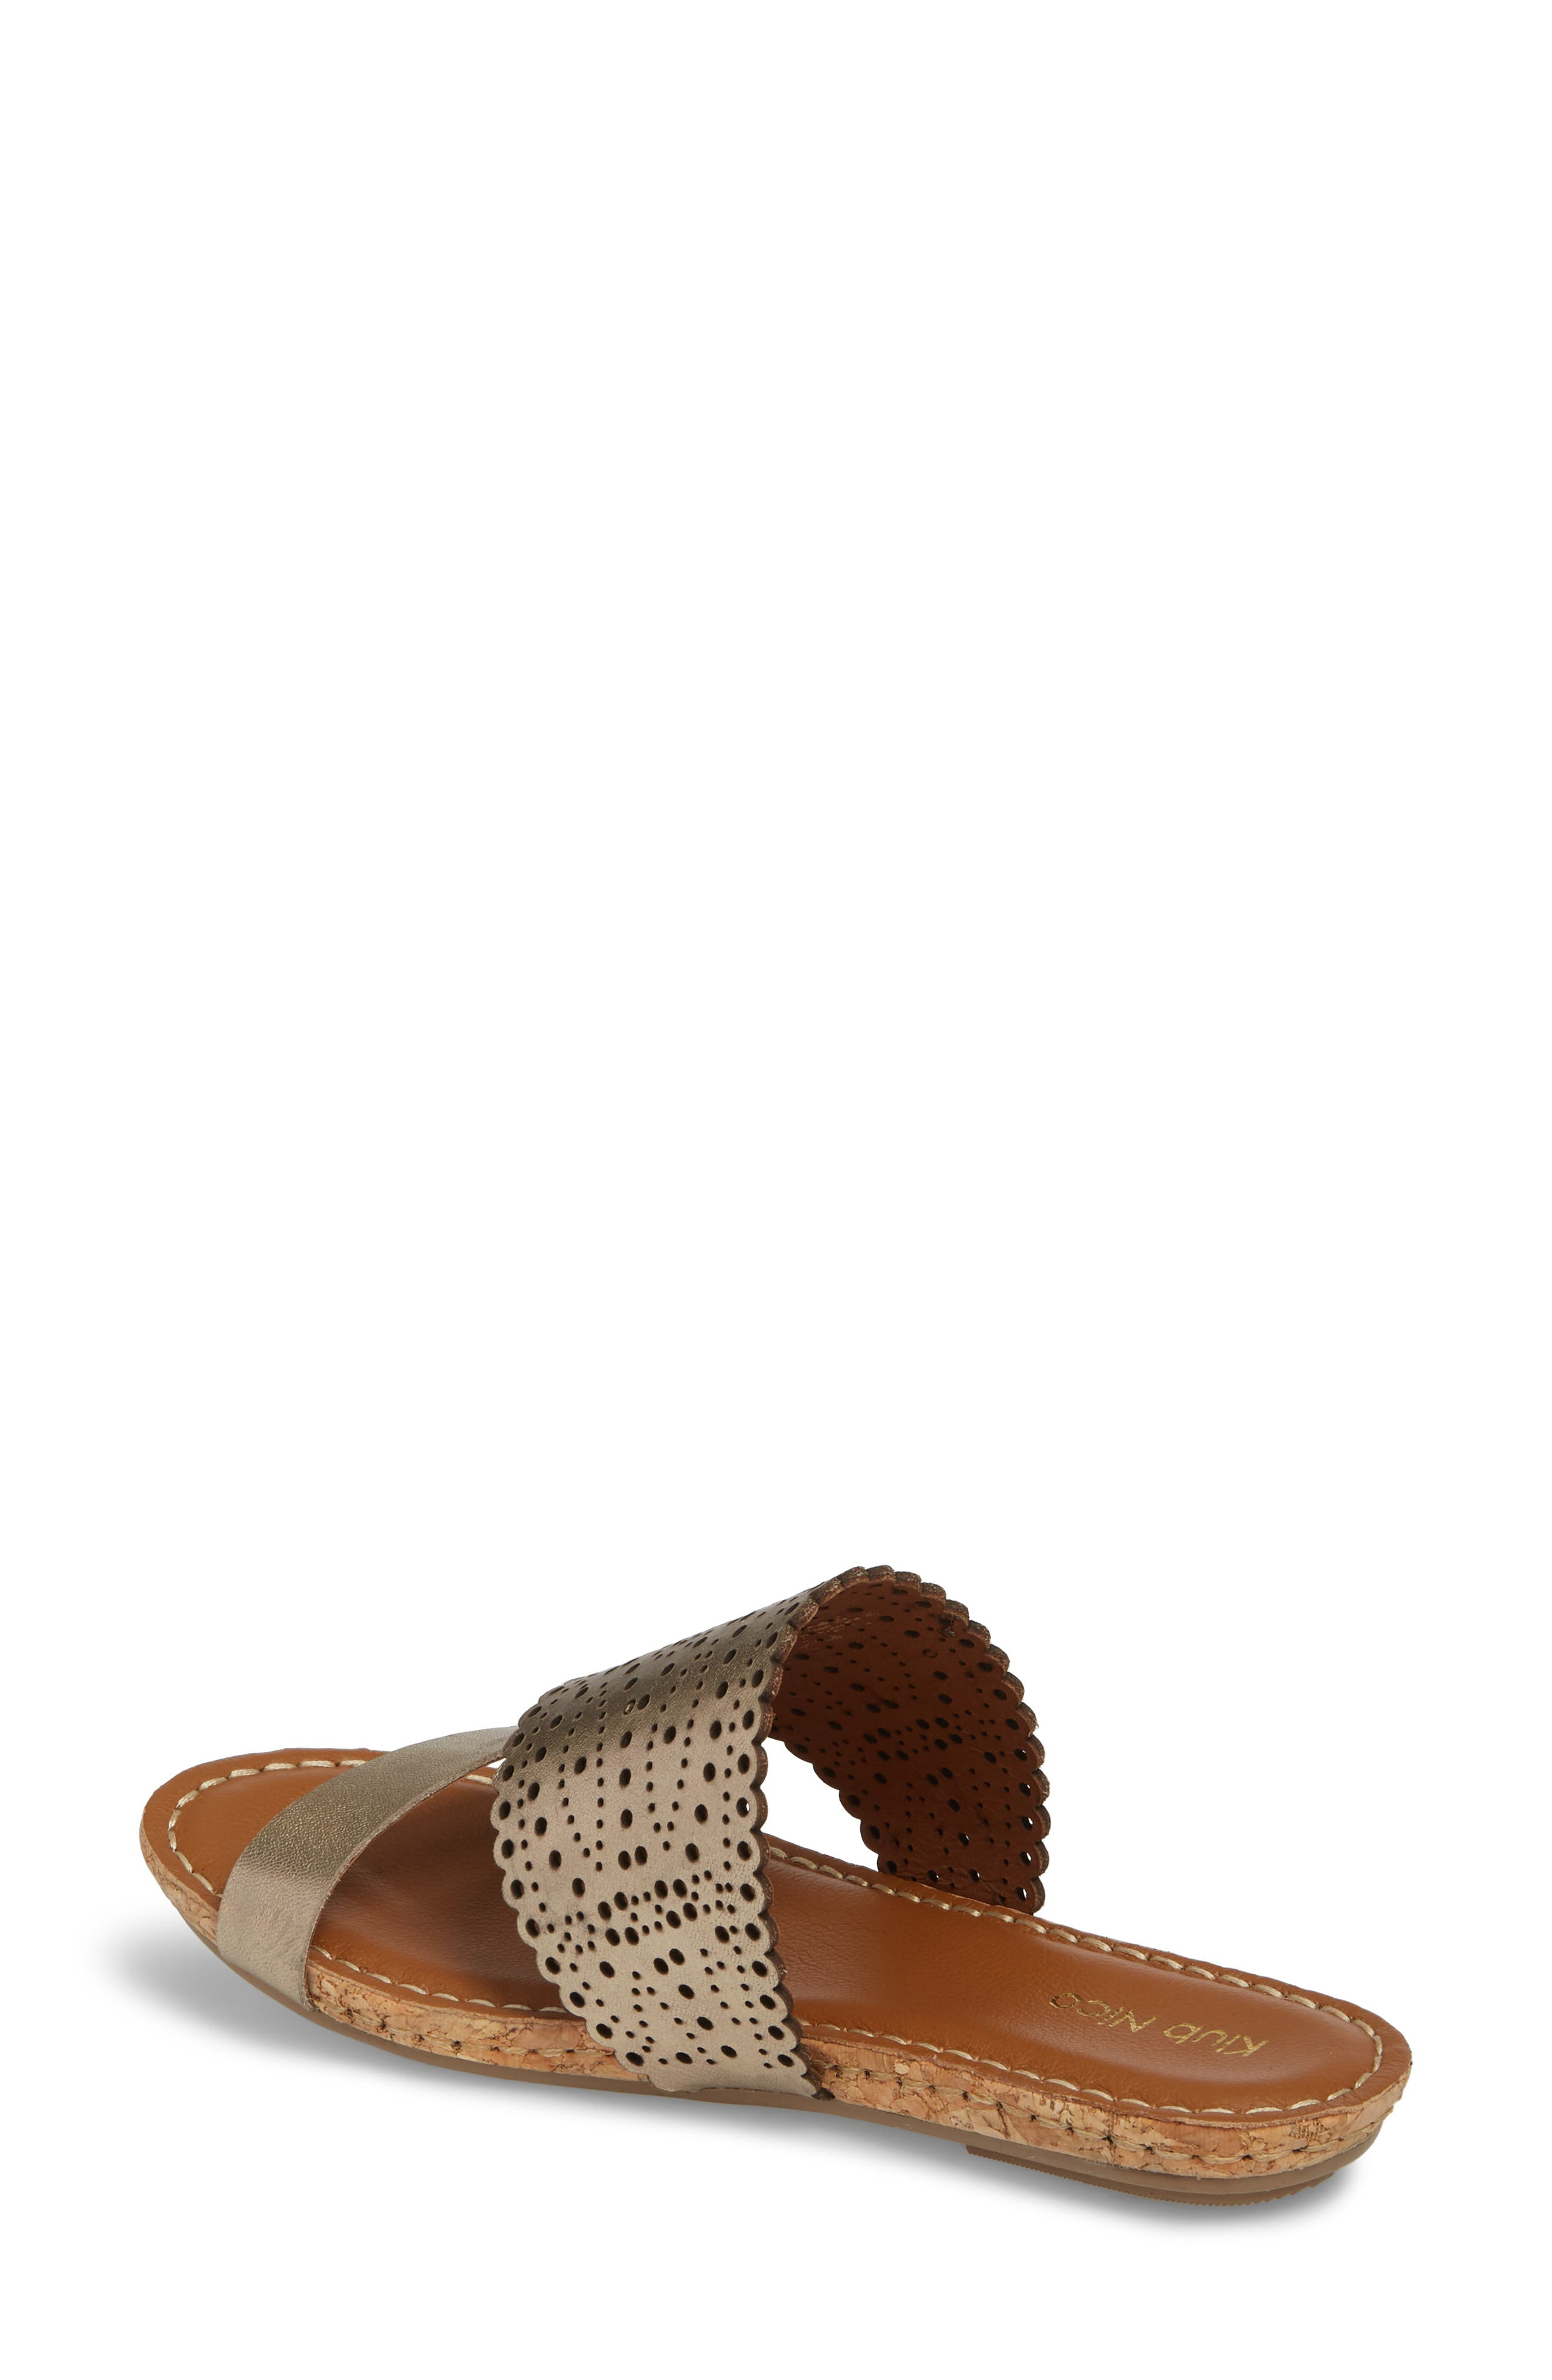 Ginette Perforated Slide Sandal,                             Alternate thumbnail 2, color,                             PEWTER LEATHER